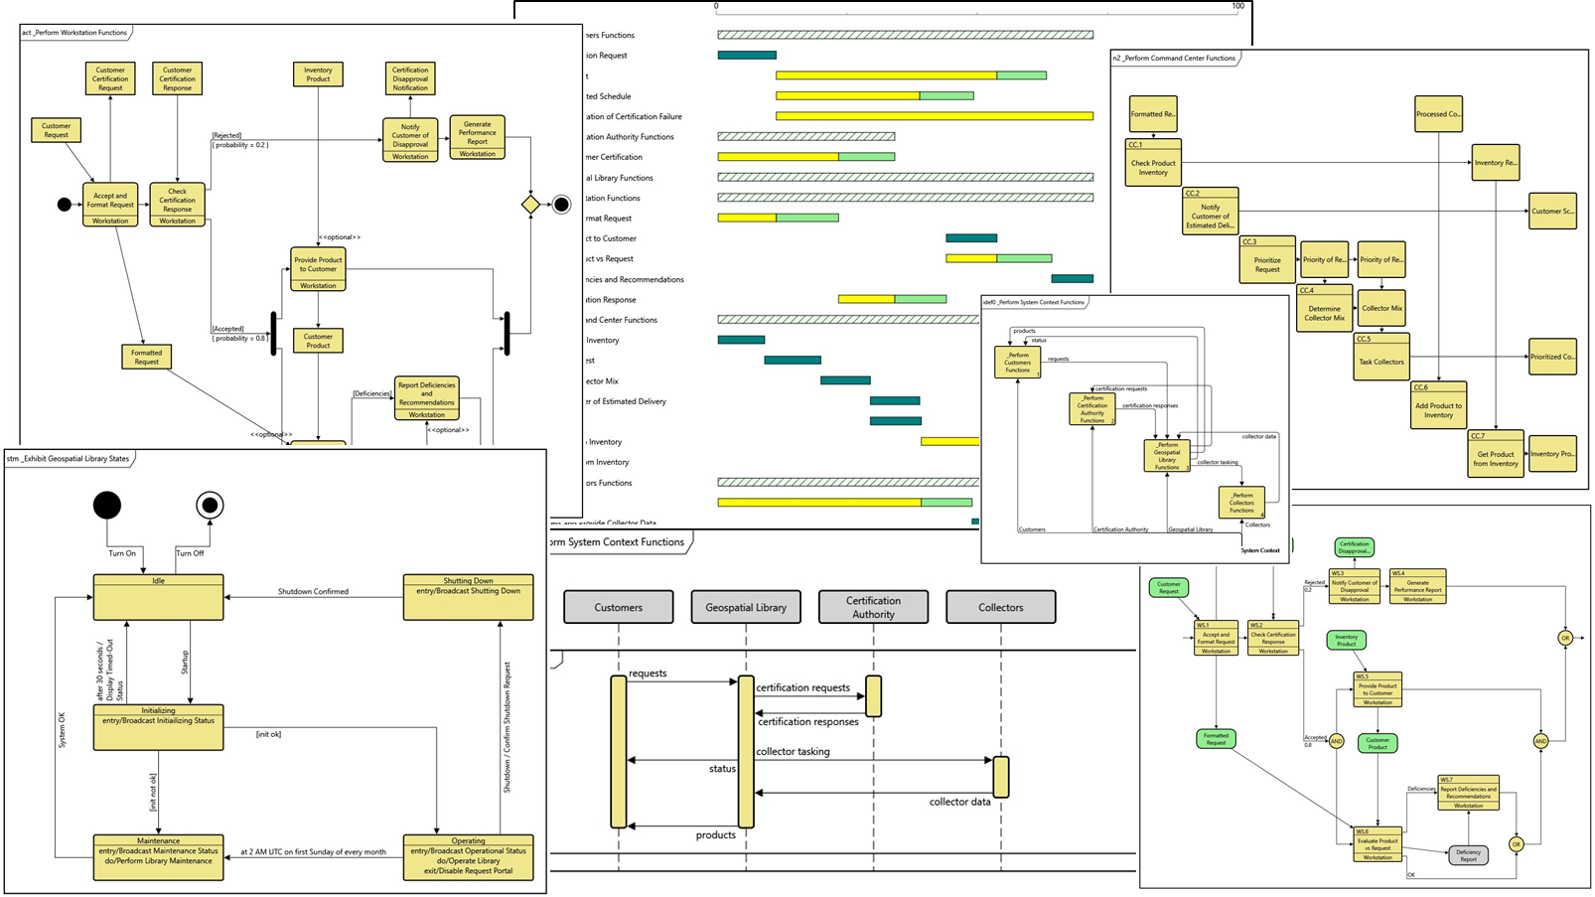 Behavior reflects the processes within a system, their sequencing and structure, and their exchanges. Leveraging a diverse library of views allows you to focus on the area of interest for analysis or communication. Vitech's software enables you to specify, modify, analyze, and communicate behavior through a rich blend of diagrams based upon your needs and preferences. Begin with an activity diagram to define the structure of the behavior. Switch to a sequence diagram to highlight exchanges between subsystems. Leverage an N2 for clustering analysis. Use an enhanced functional flow block diagram to communicate with stakeholders. And do it all knowing that GENESYS maintains consistency between the views, automatically generating each visualization from the underlying behavioral architecture with 100% consistency.